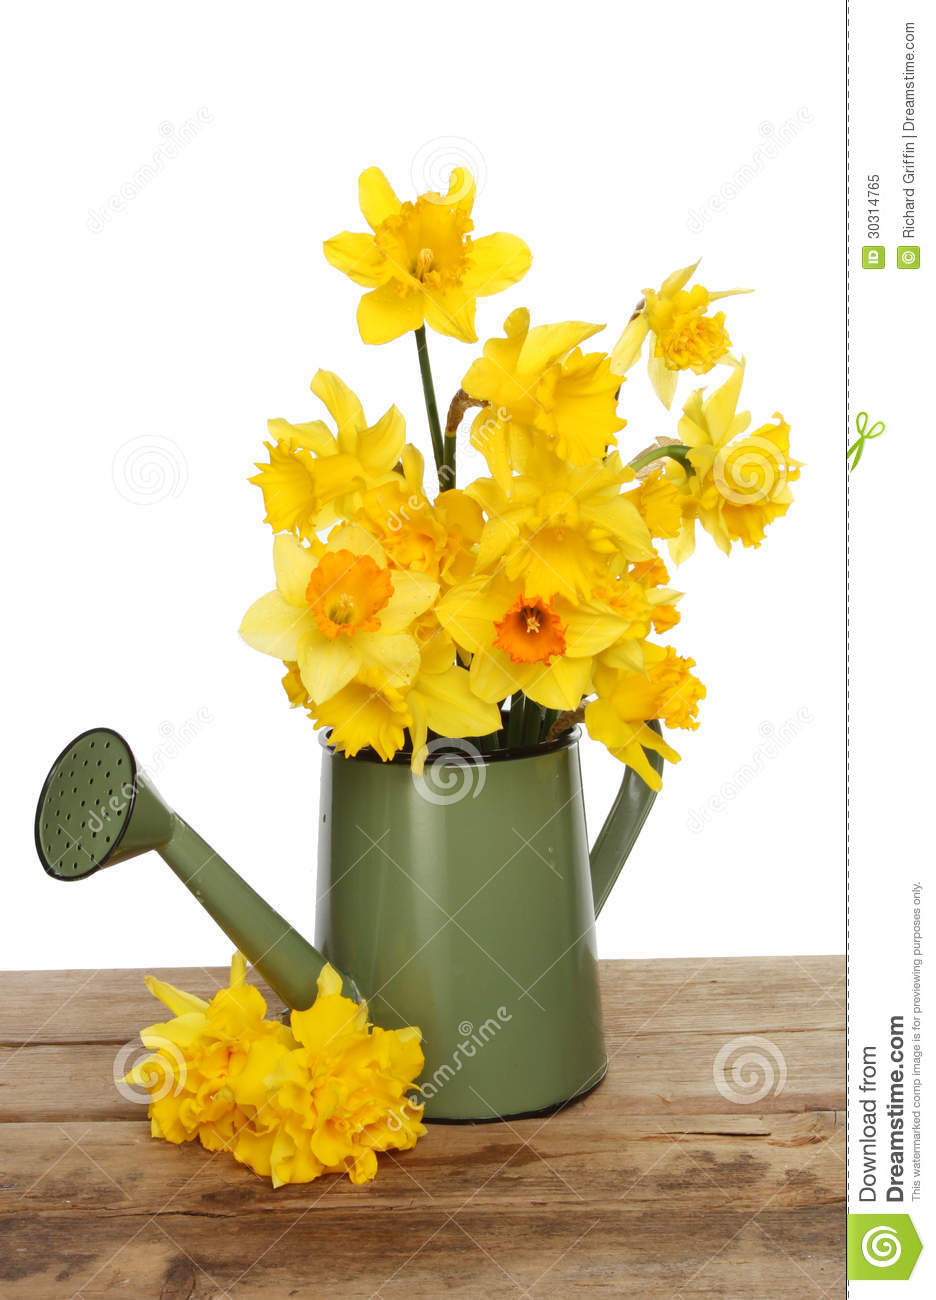 Daffodils In A Watering Can Stock Image Image of trumpet